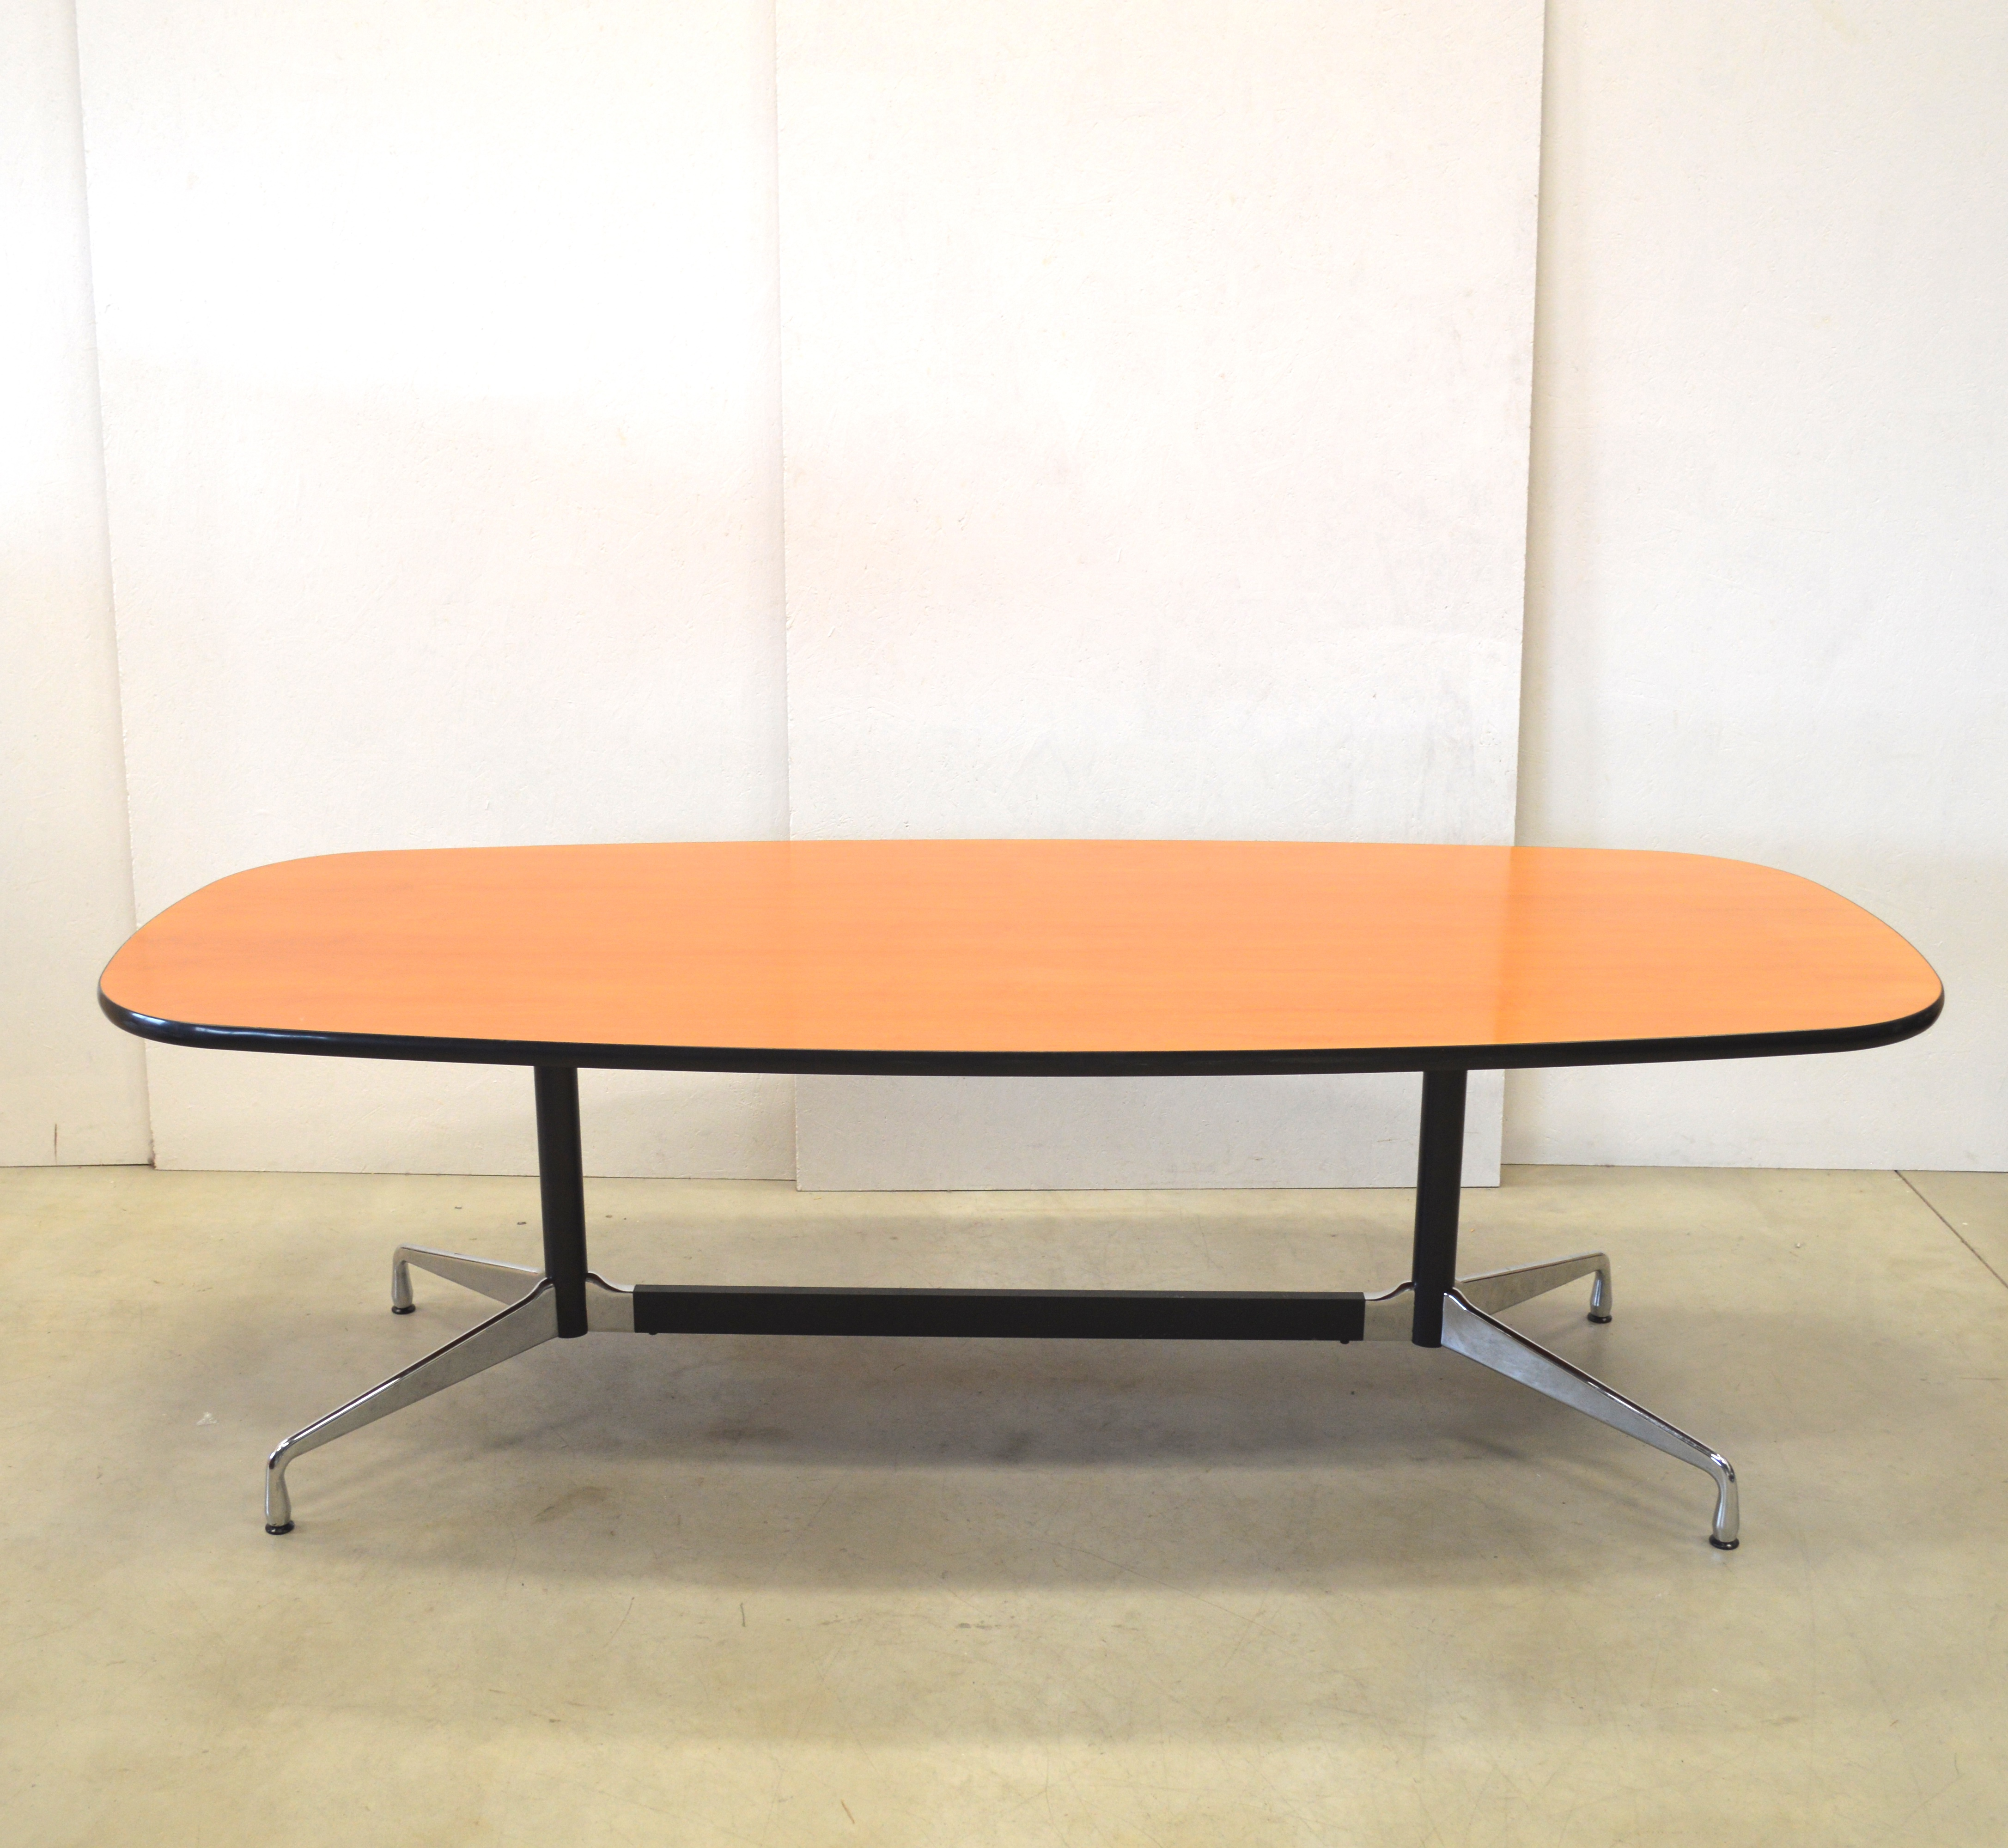 Tisch Eames Vitra Segmented Conference Table By Charles Eames Interior Aksel